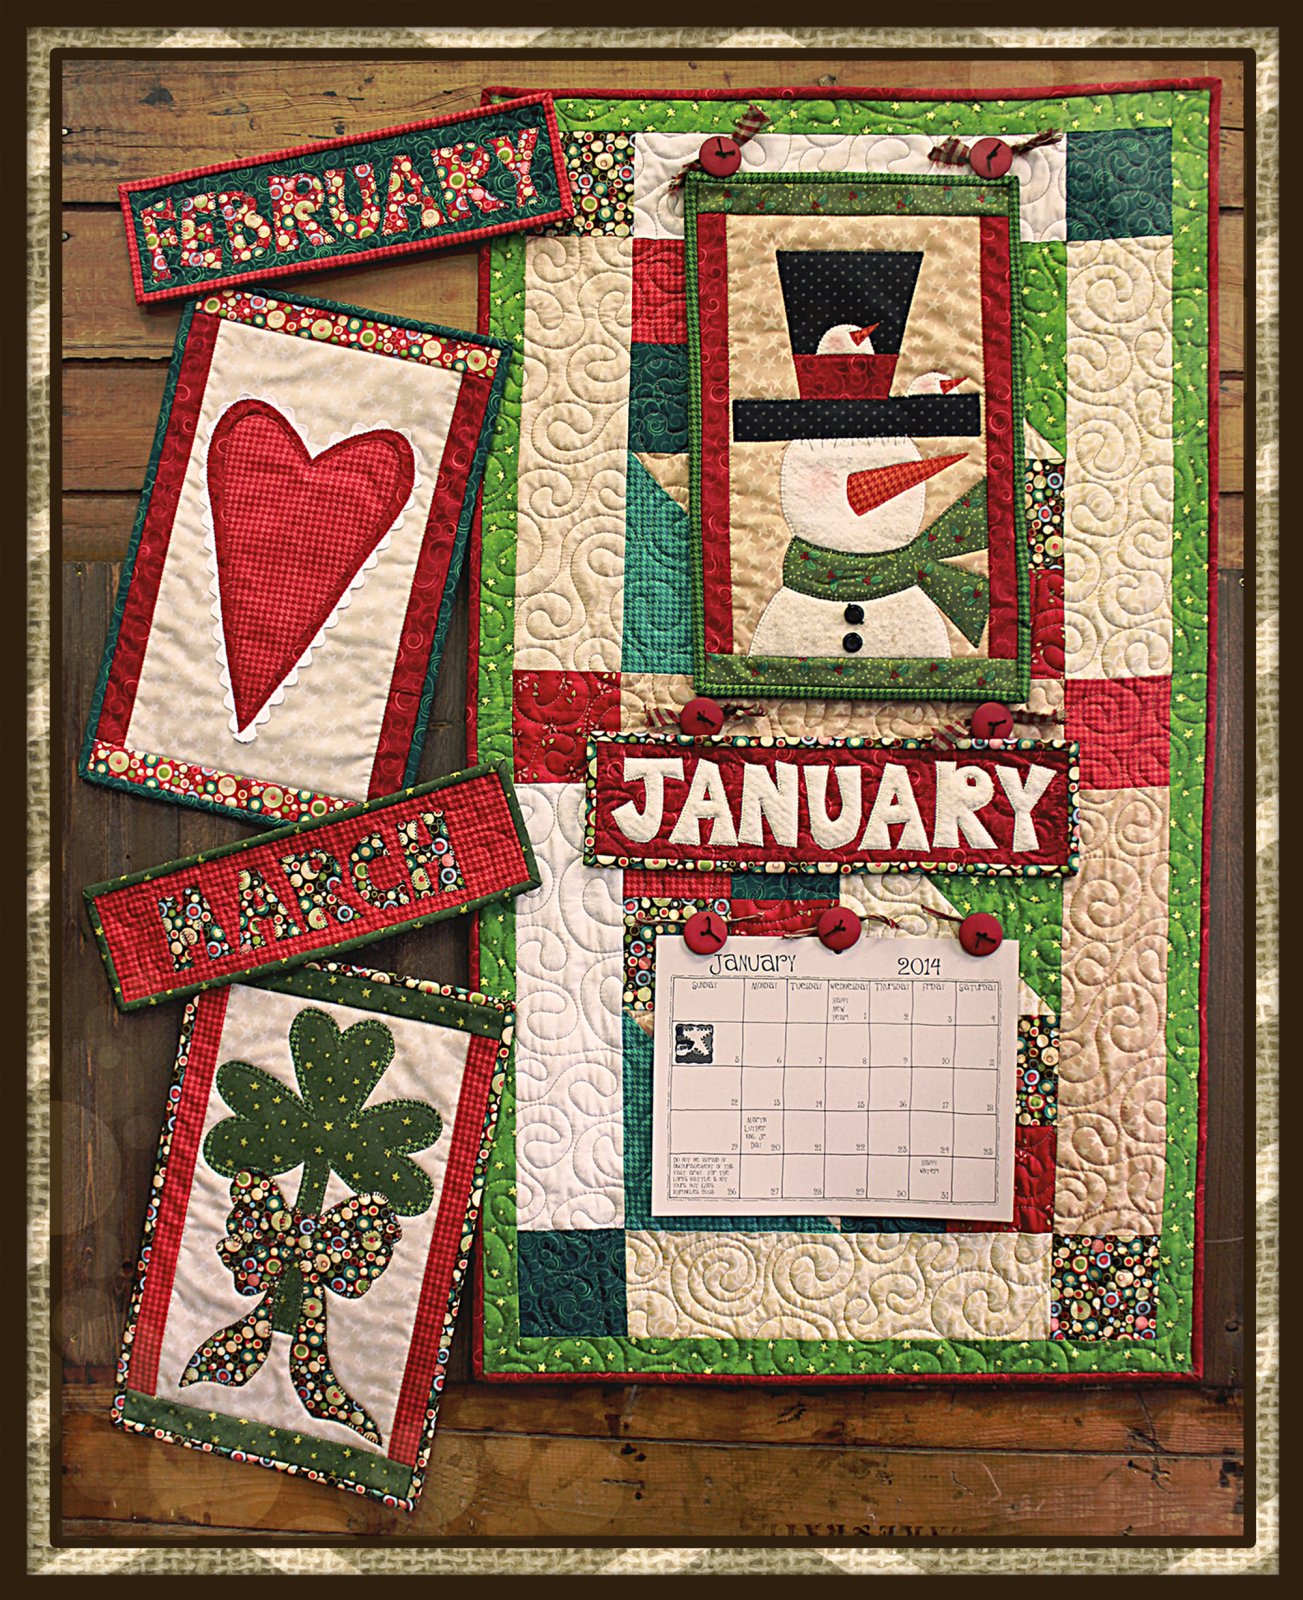 Doodle Days Calendar & Base Quilt January * February * March